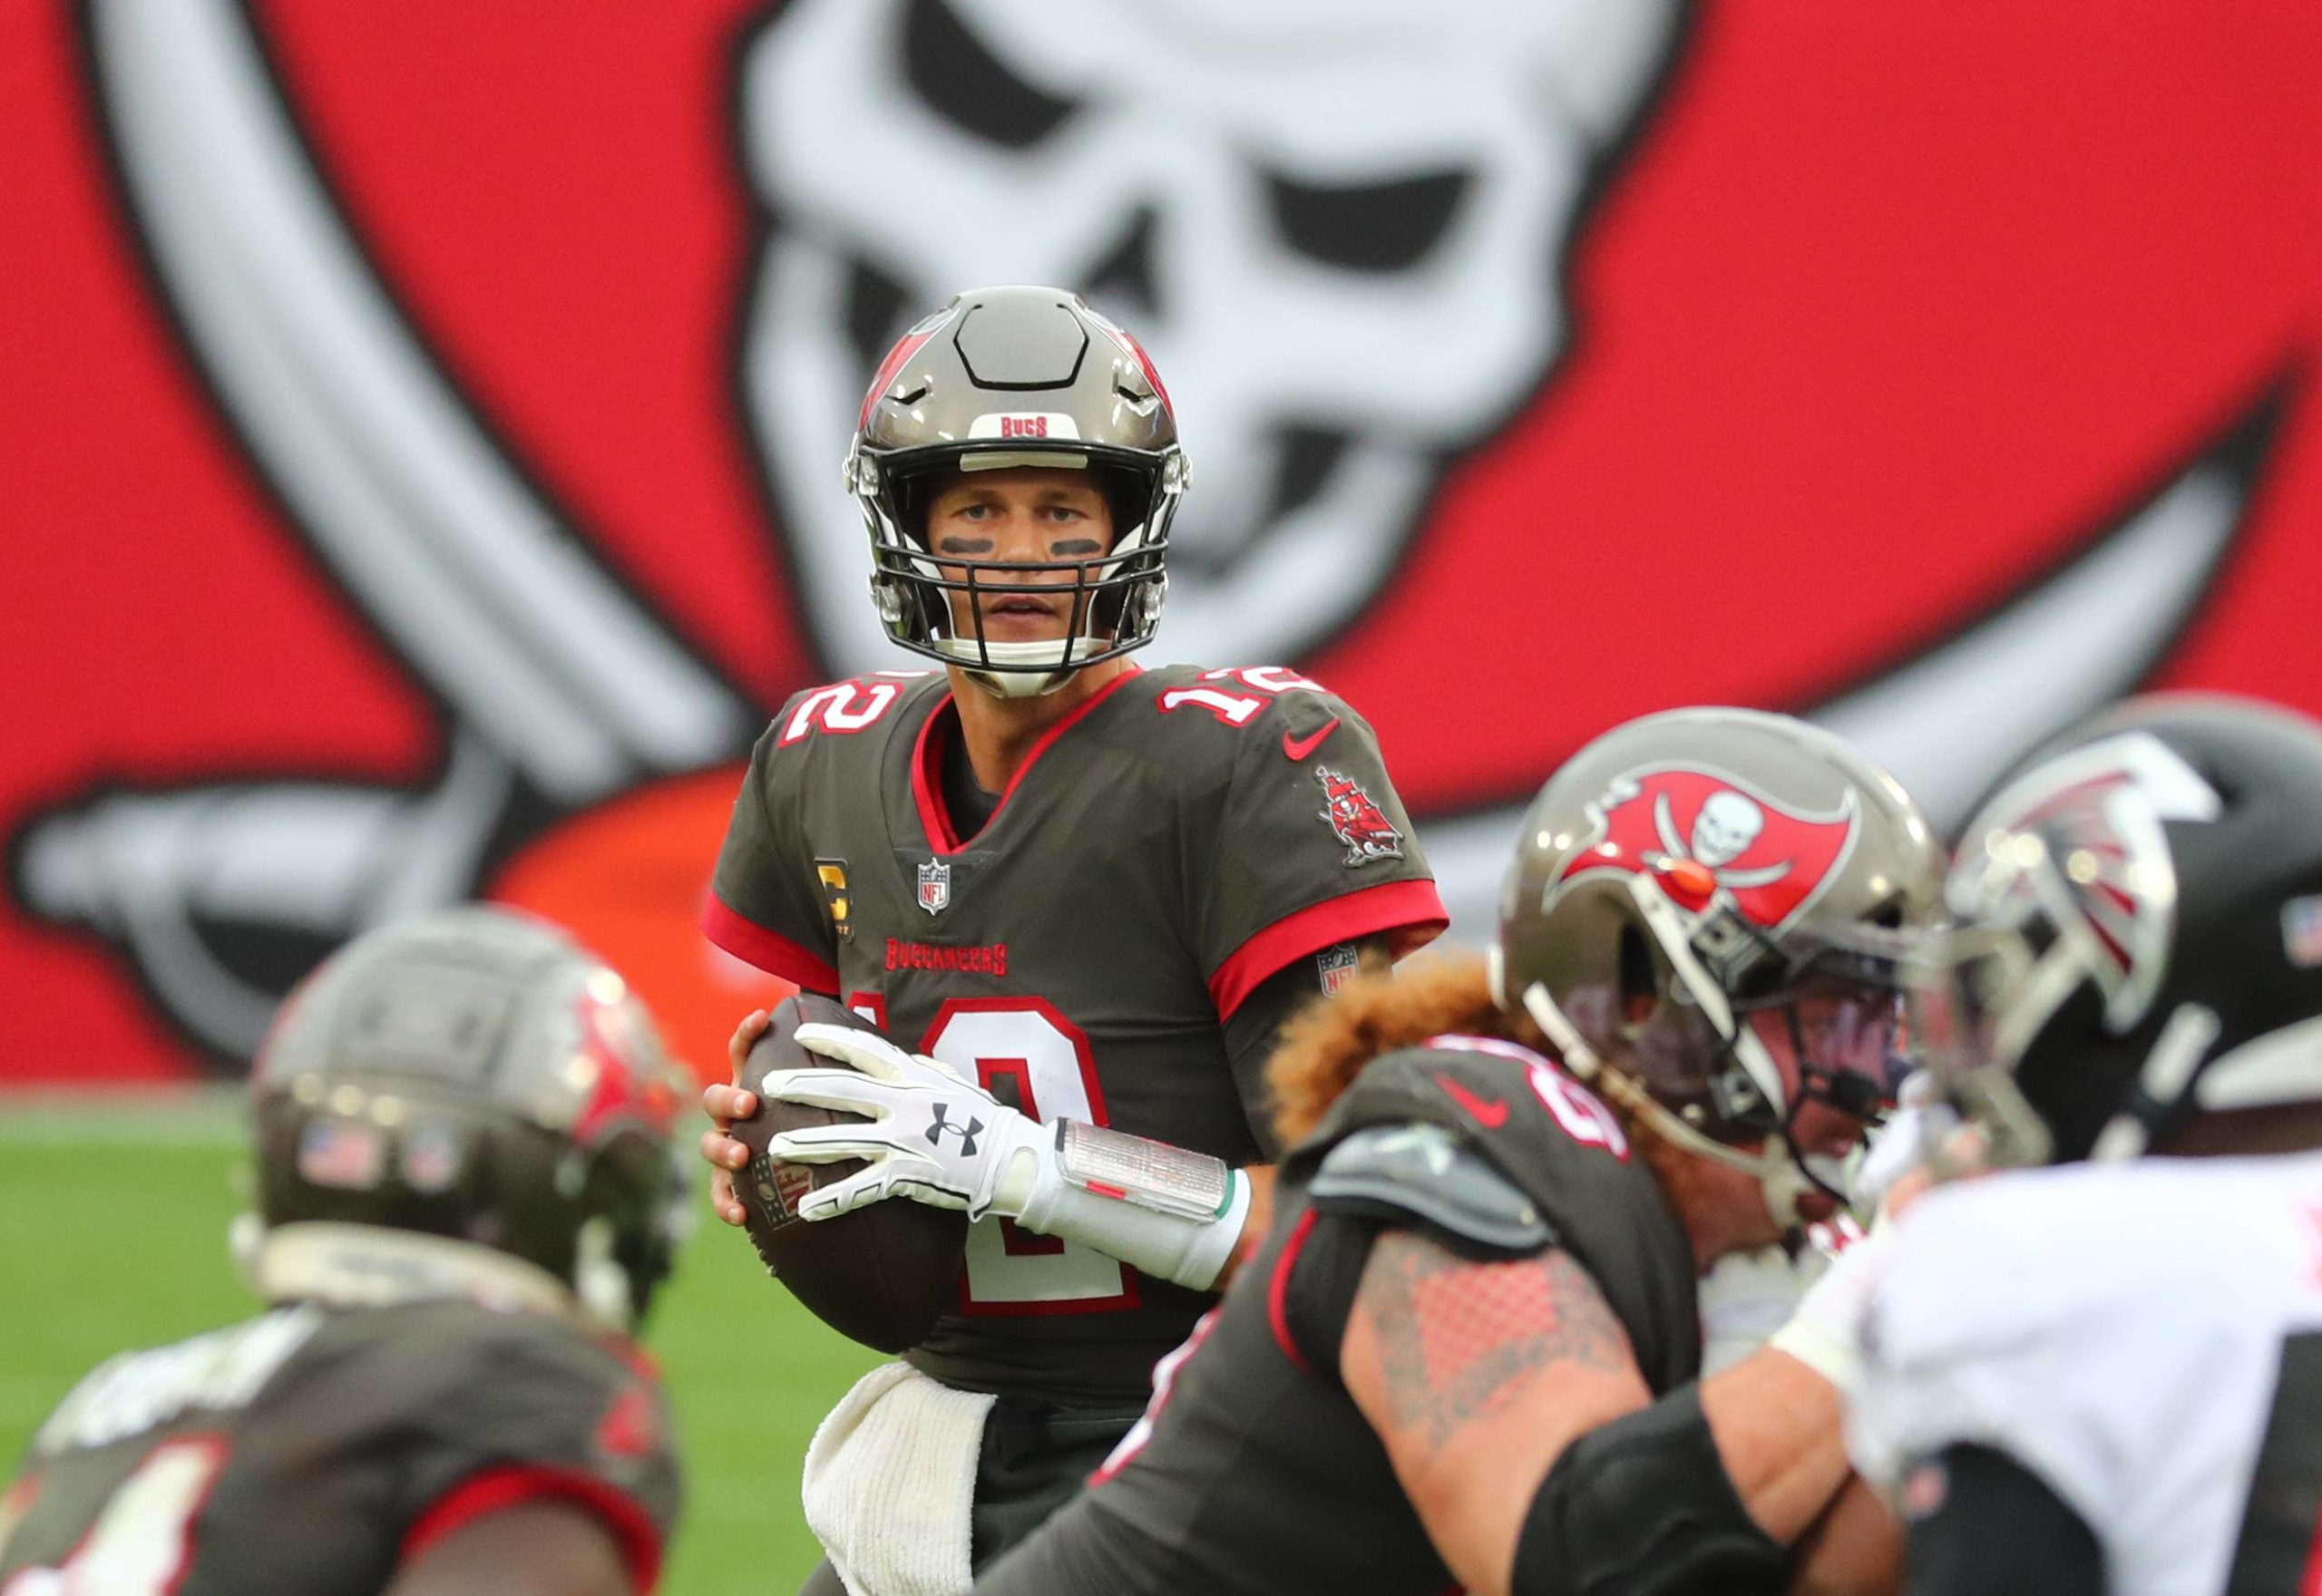 Buccaneers quarterback Tom Brady drops back to pass against the Falcons during the second half of their game in Tampa, Florida, on Sunday. | USA TODAY / VIA REUTERS